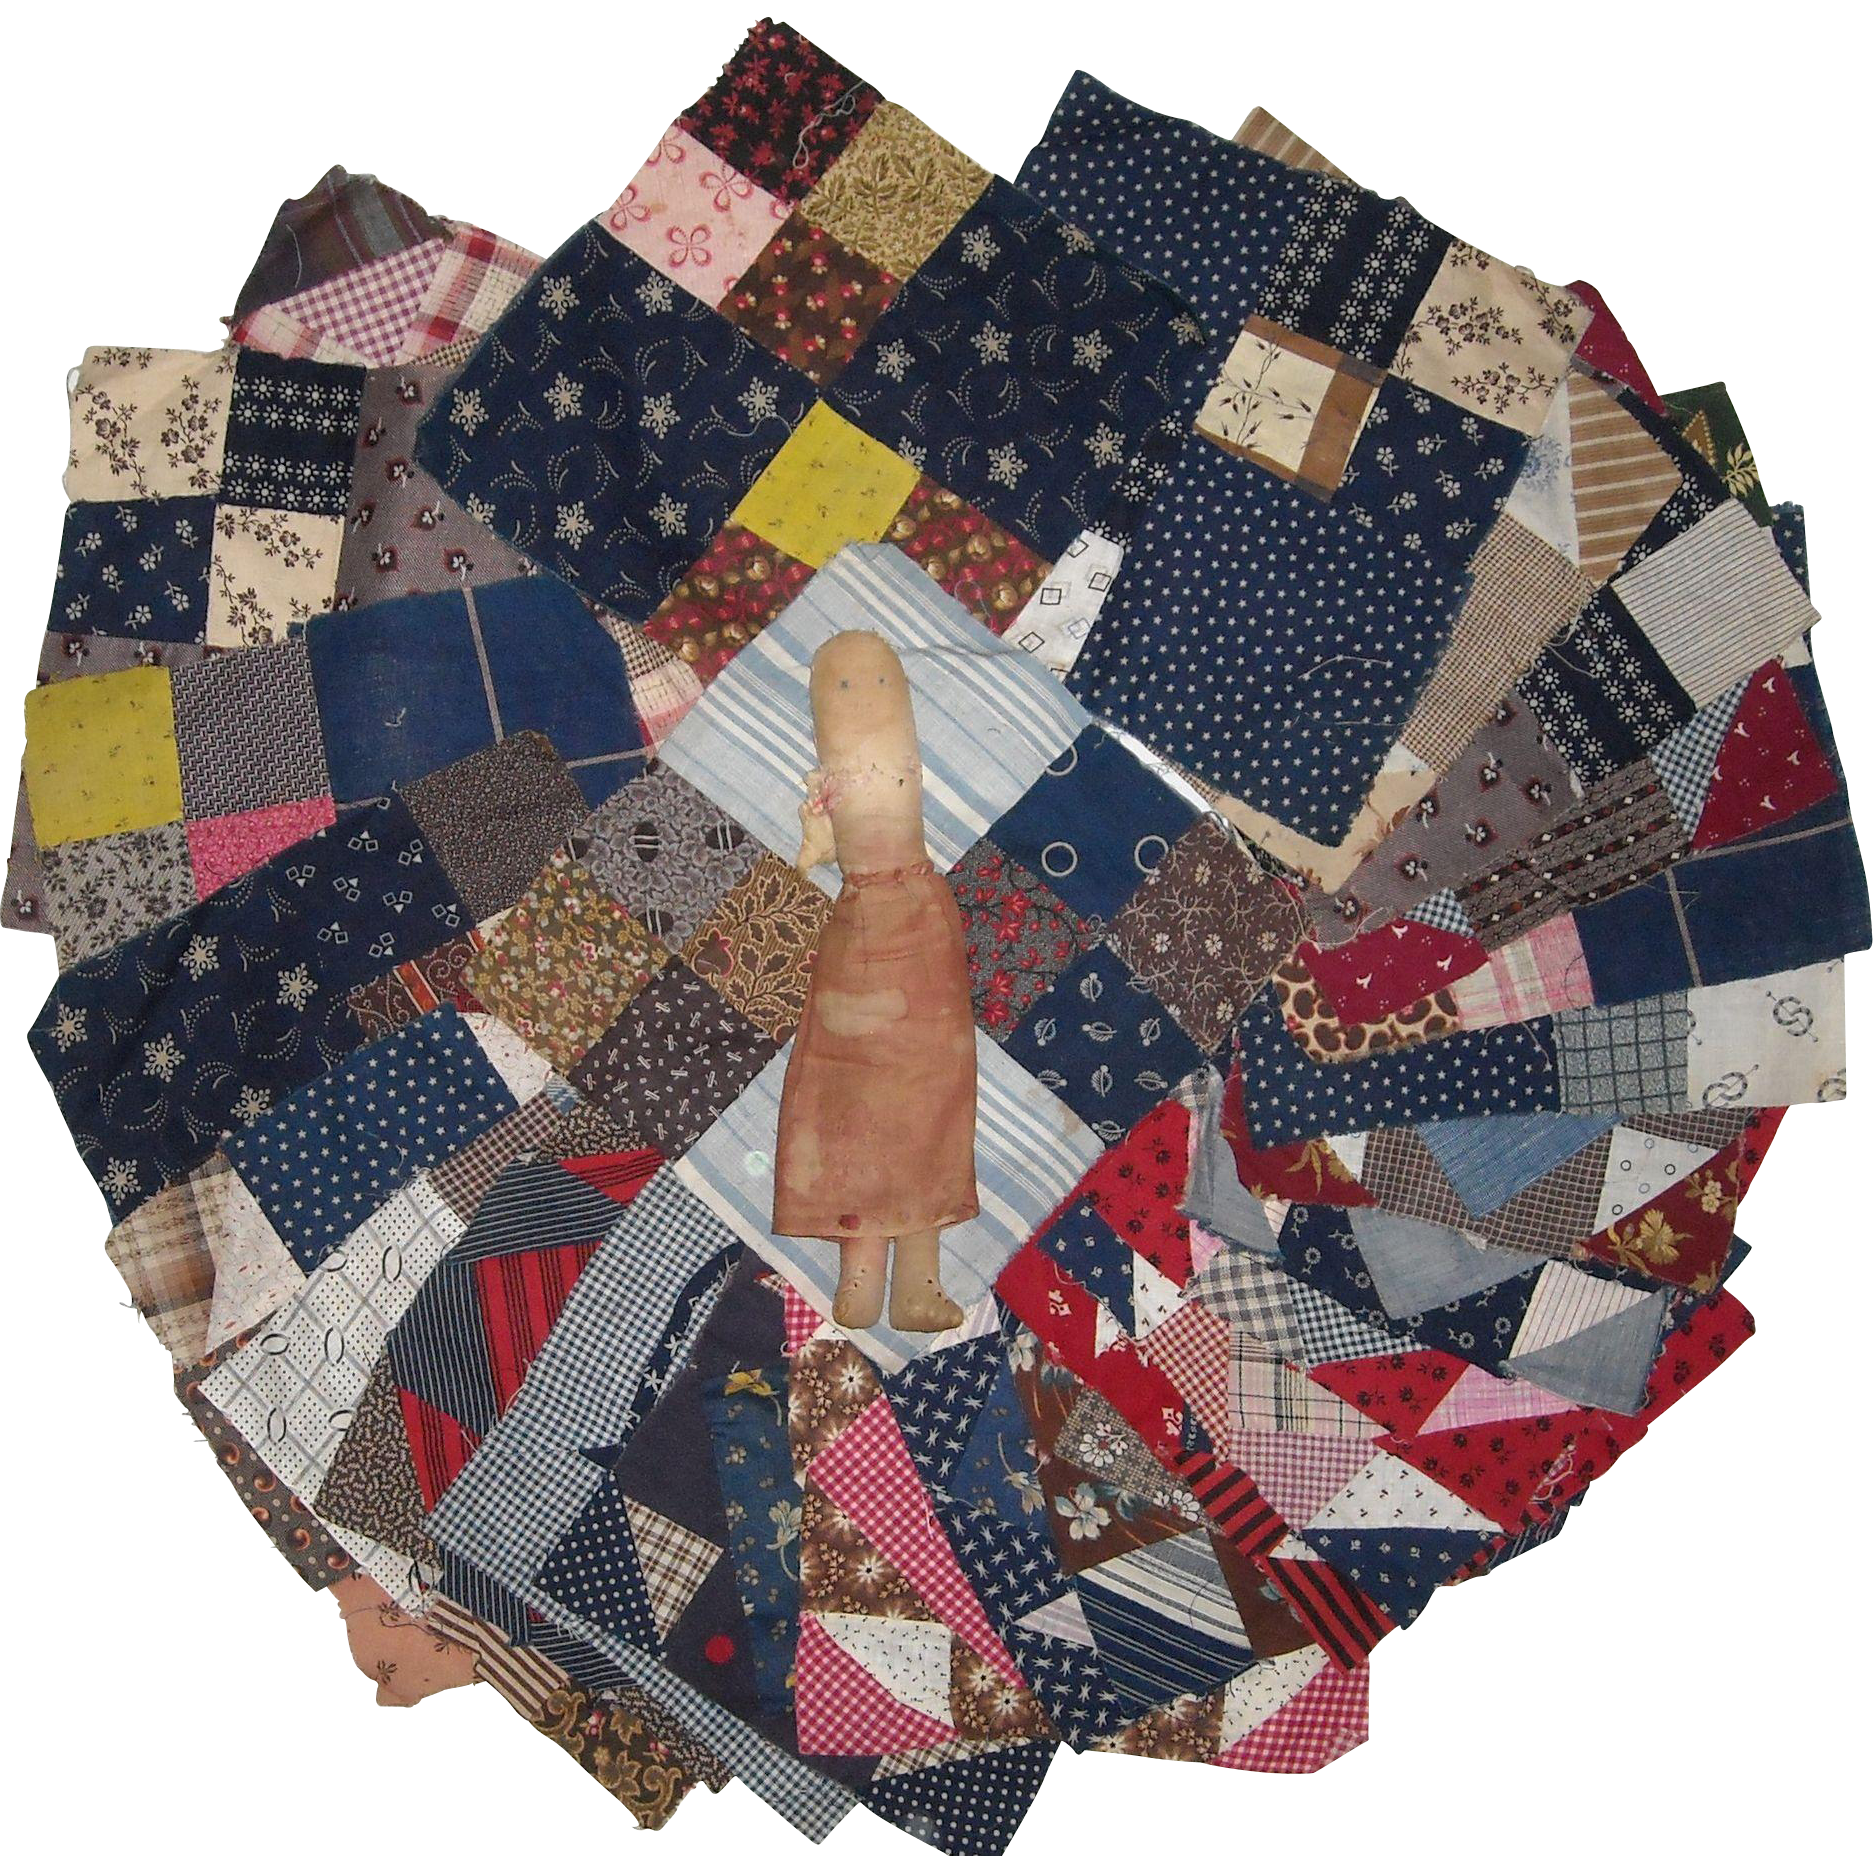 25 Early Quilt Squares, Home Made Doll and Quilt Fabric Pieces